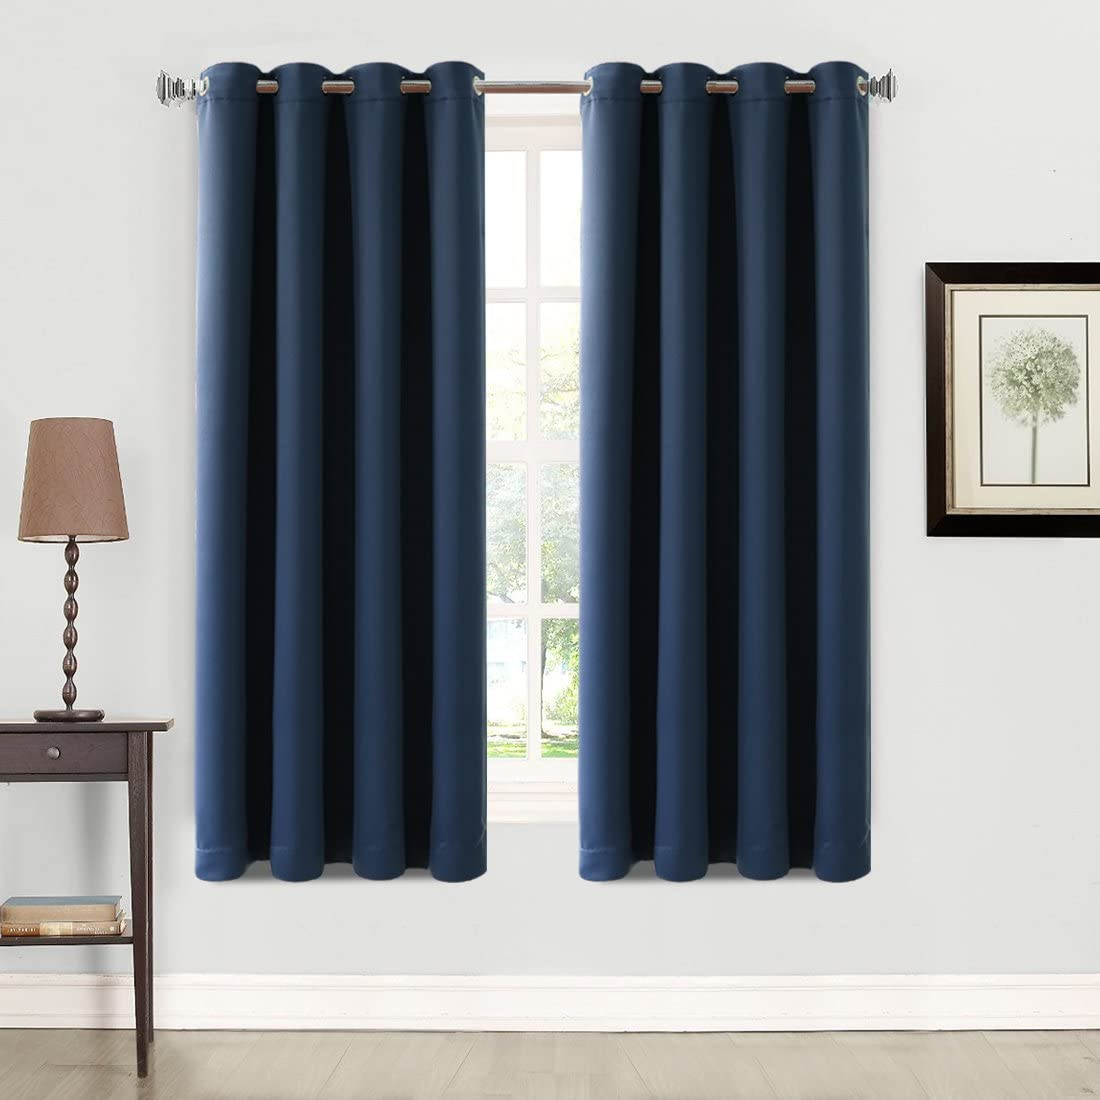 Balichun 2 Panels Blackout Curtains Thermal Insulated Grommets Drapes for Bedroom 52 by 63 Inch Navy